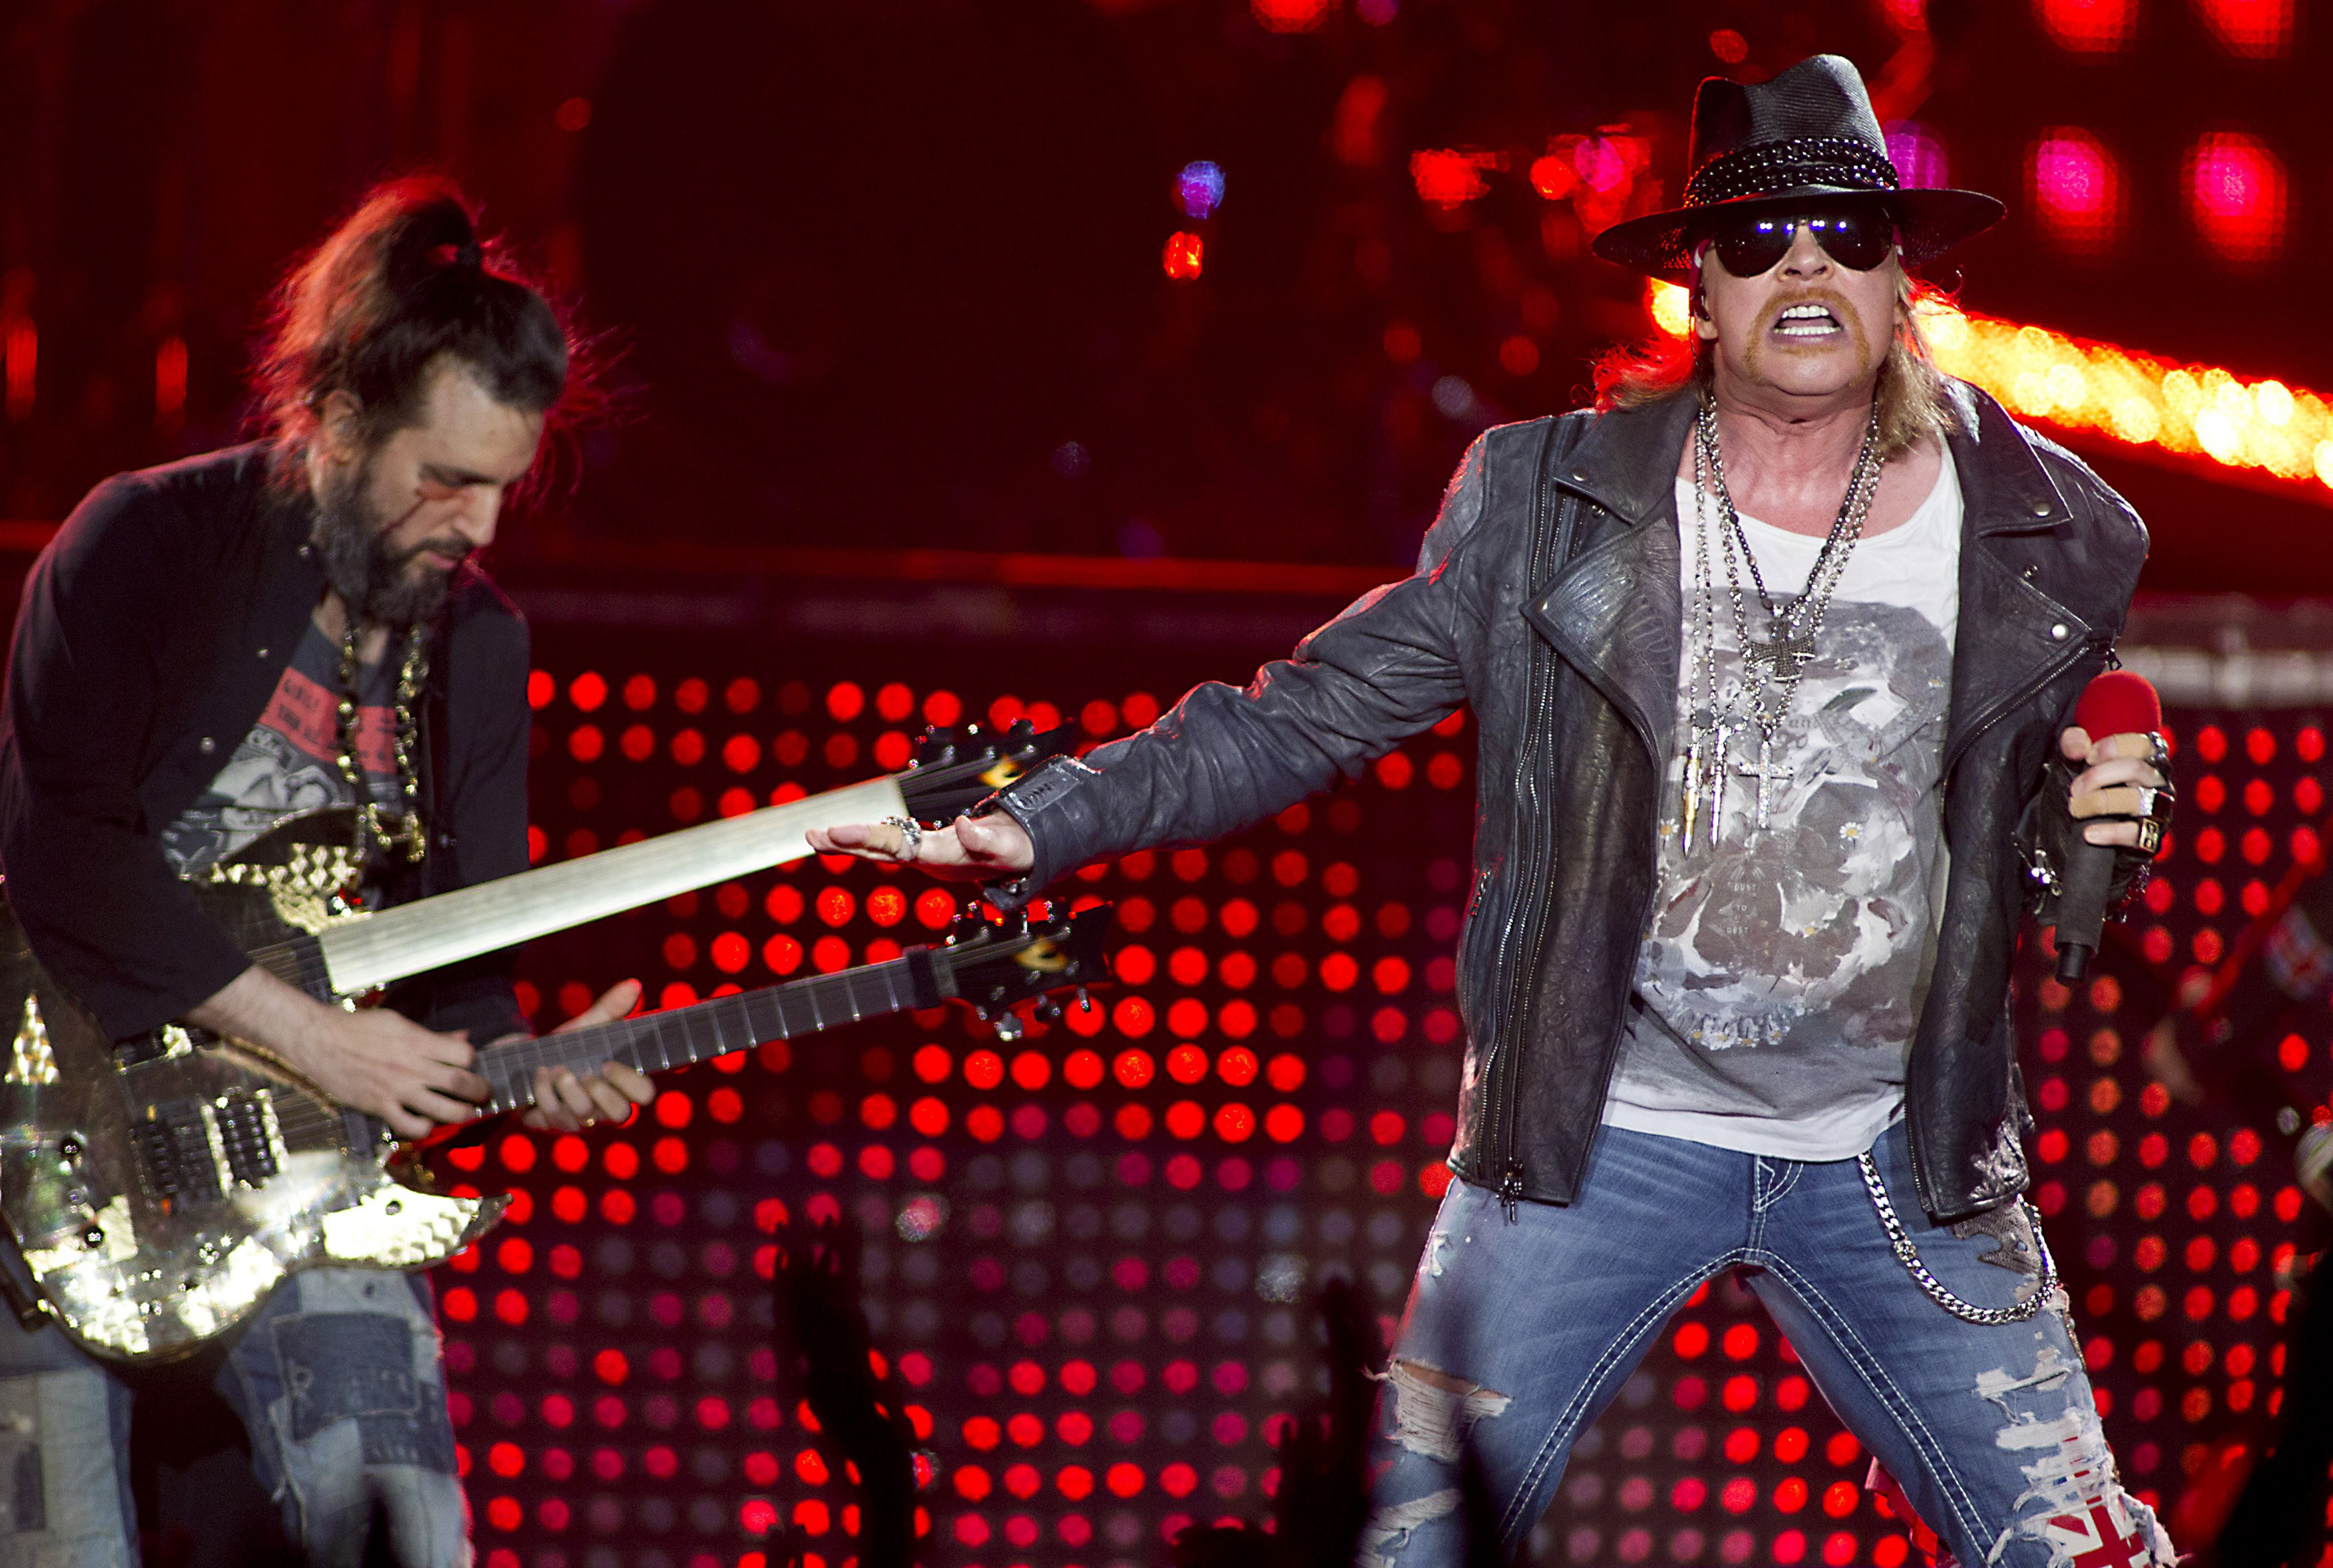 Guns N' Roses performs at 10 p.m. tonight in the Outer Harbor.